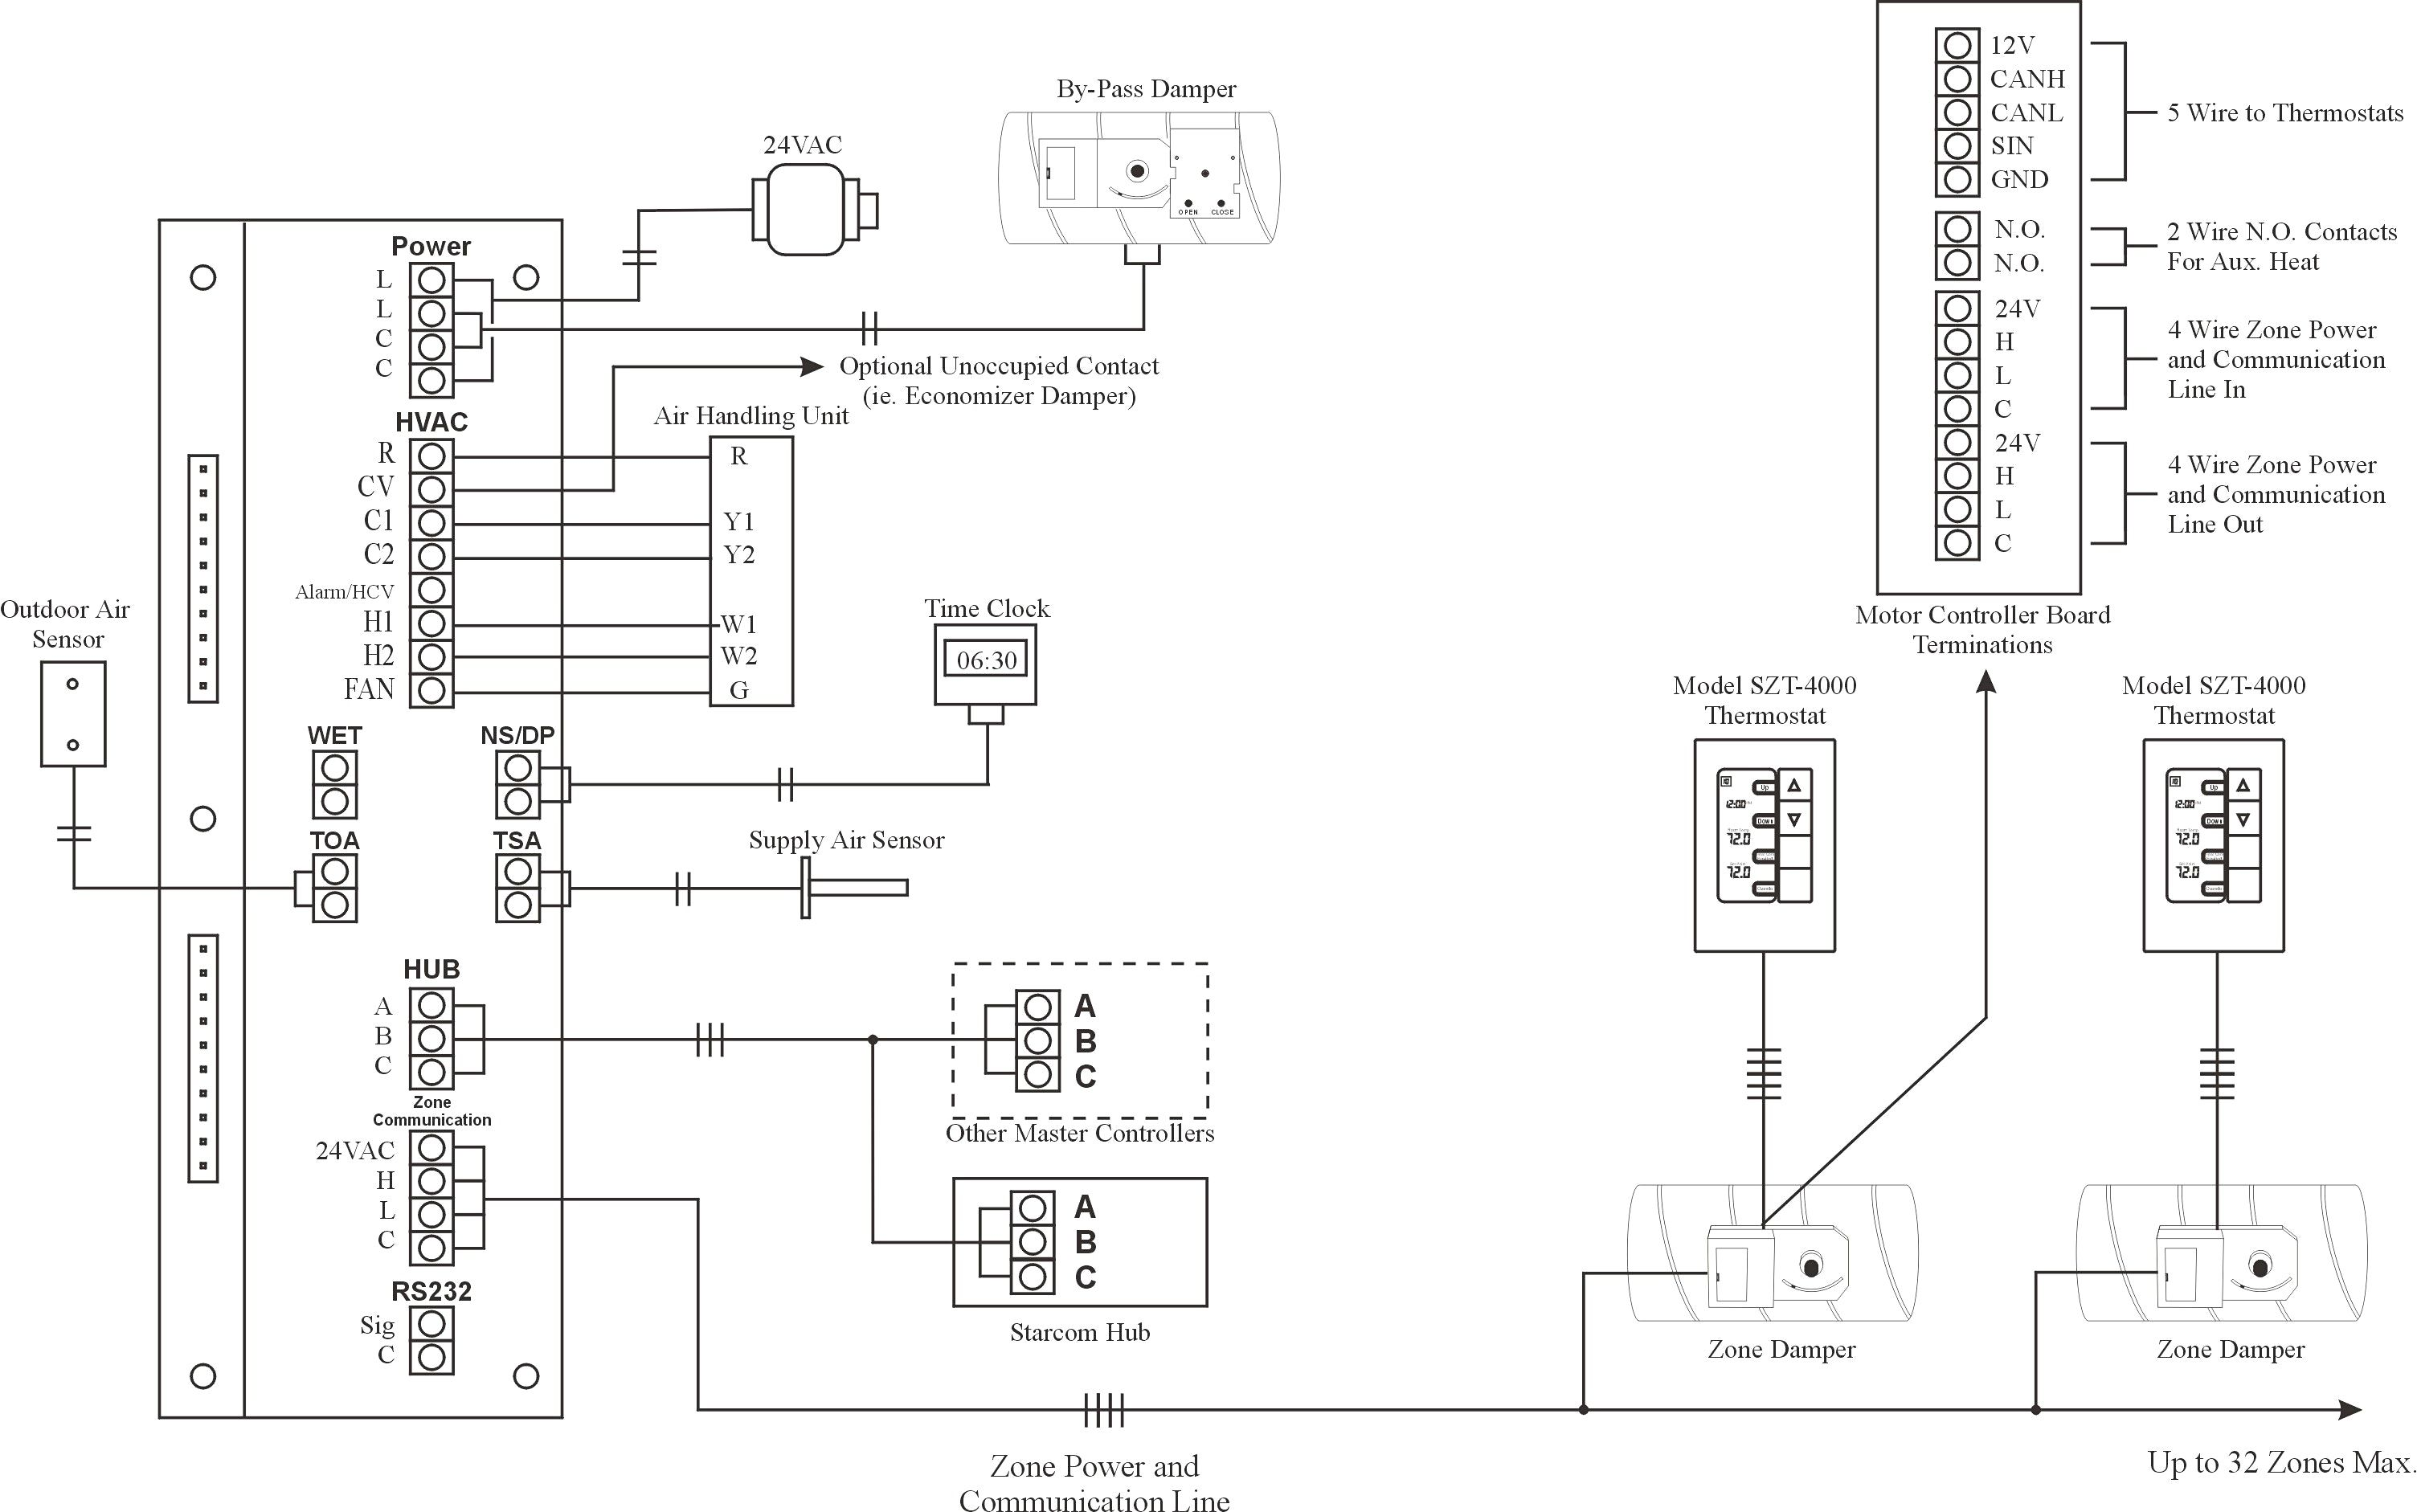 C Plan Wiring Diagram Central Heating Diagrams To Download Also Remarkable  Fire Wire, Diagram,